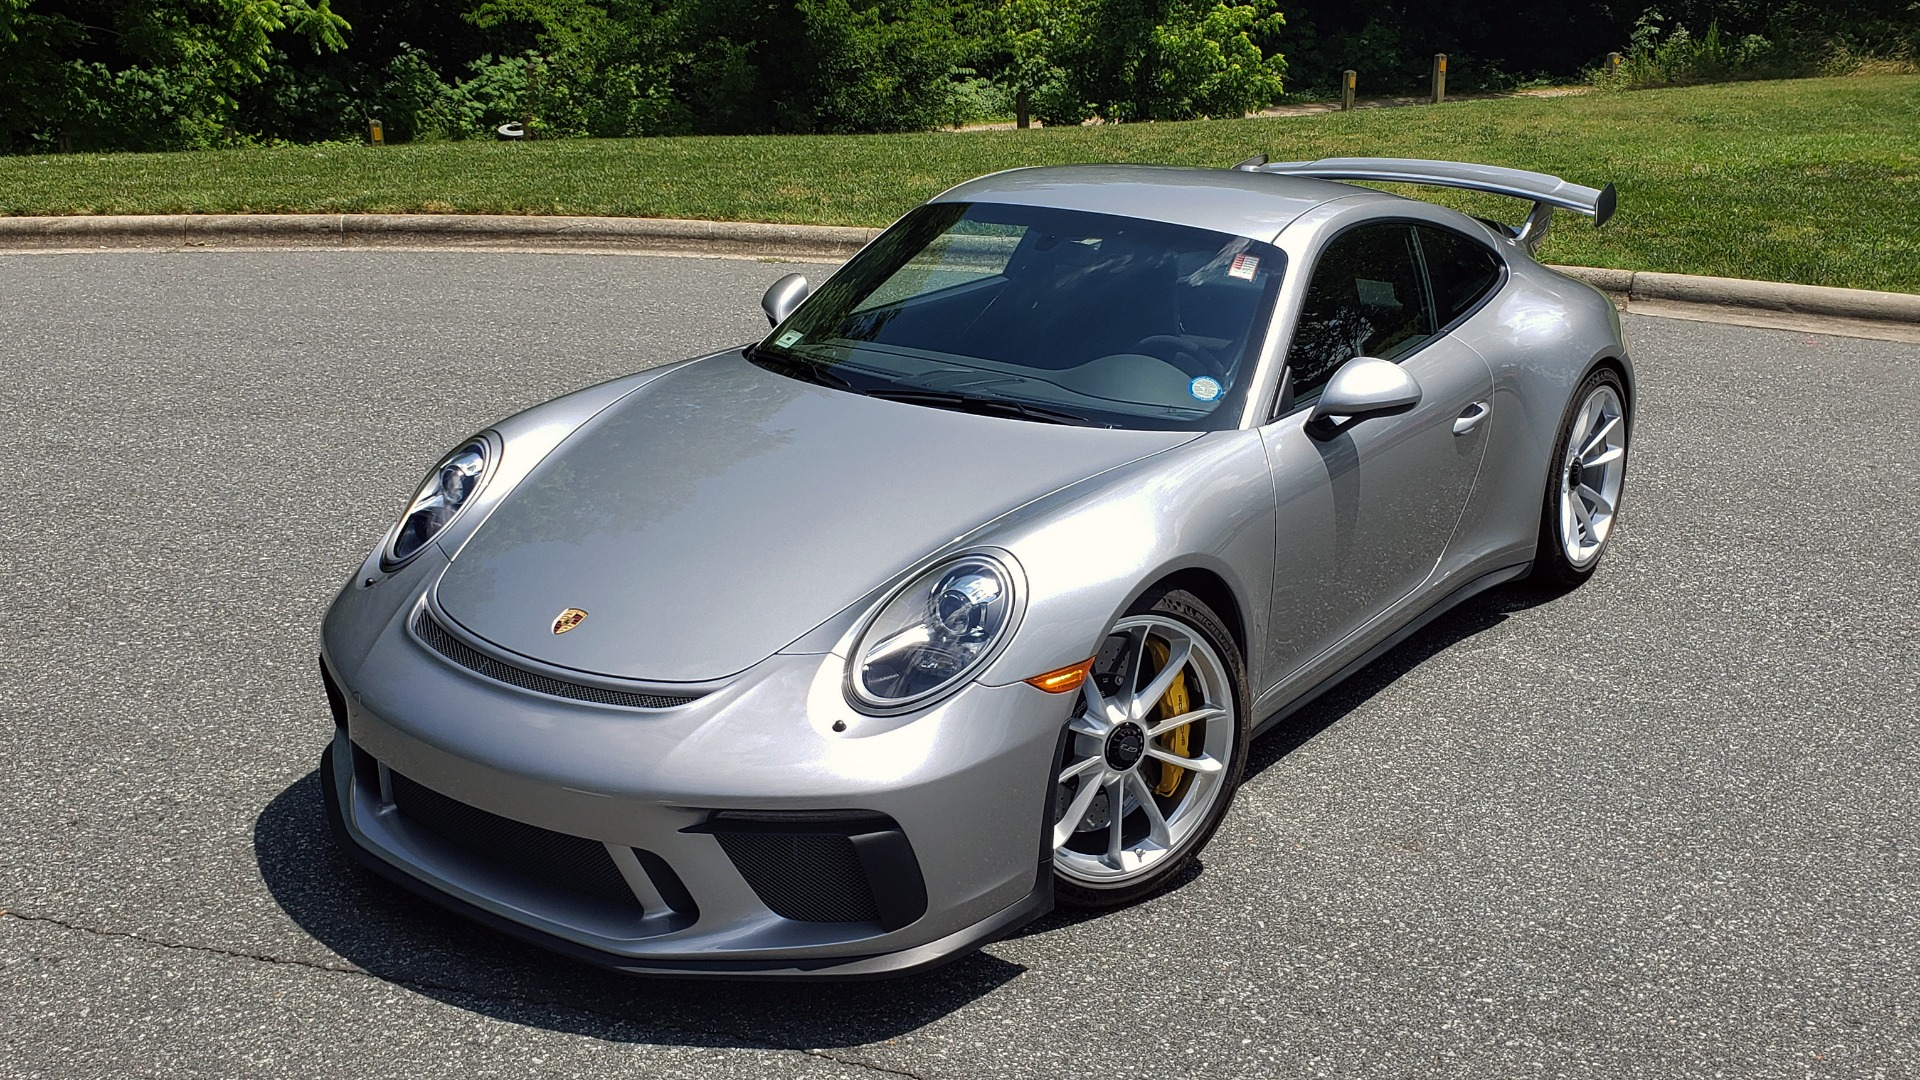 Used 2018 Porsche 911 GT3 4.0L 500HP / 6-SPD MNL / NAV / REARVIEW / PCCB for sale Sold at Formula Imports in Charlotte NC 28227 3